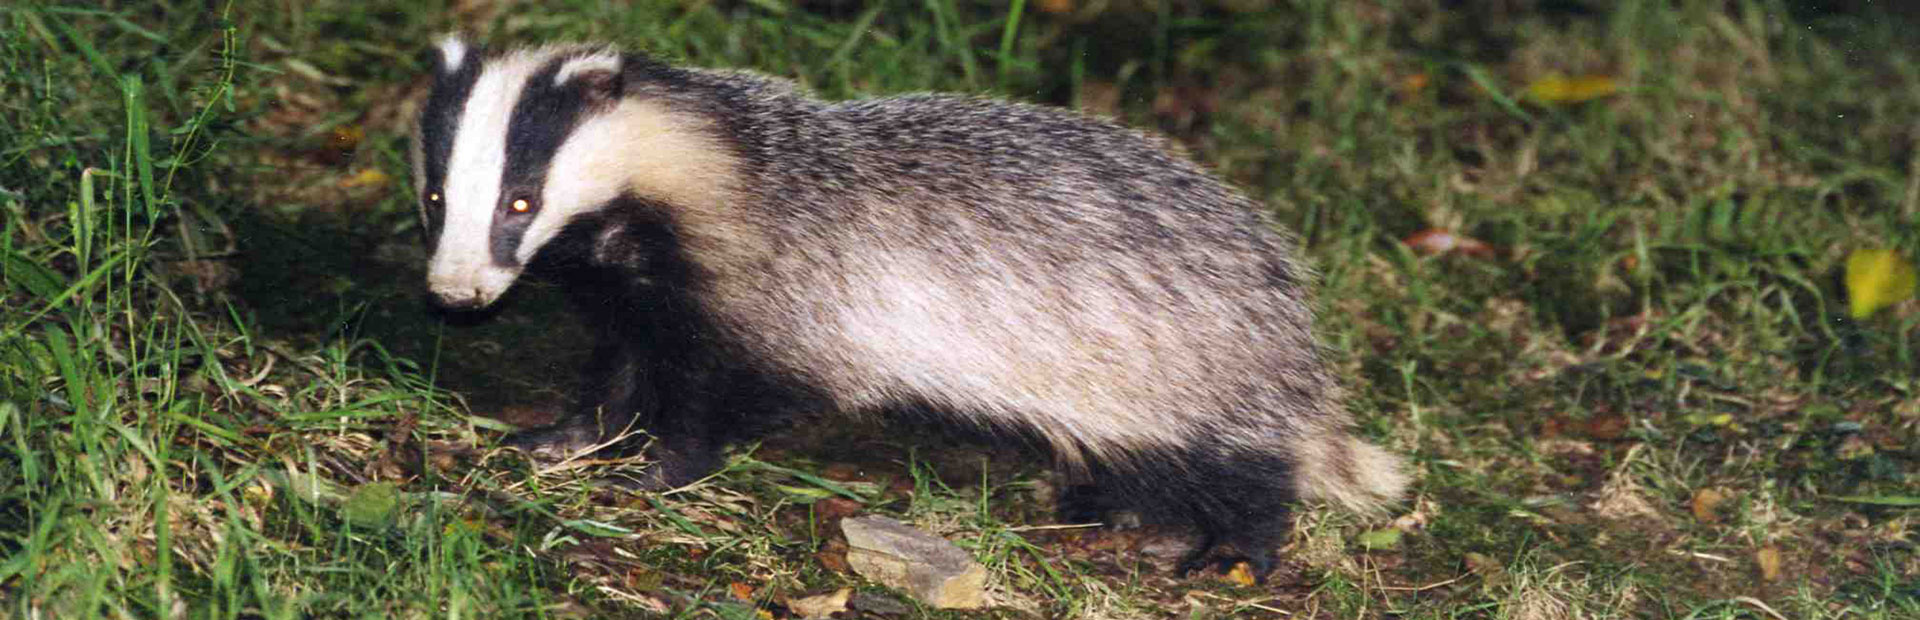 Devon-badger-watch-badgers-2-jpg